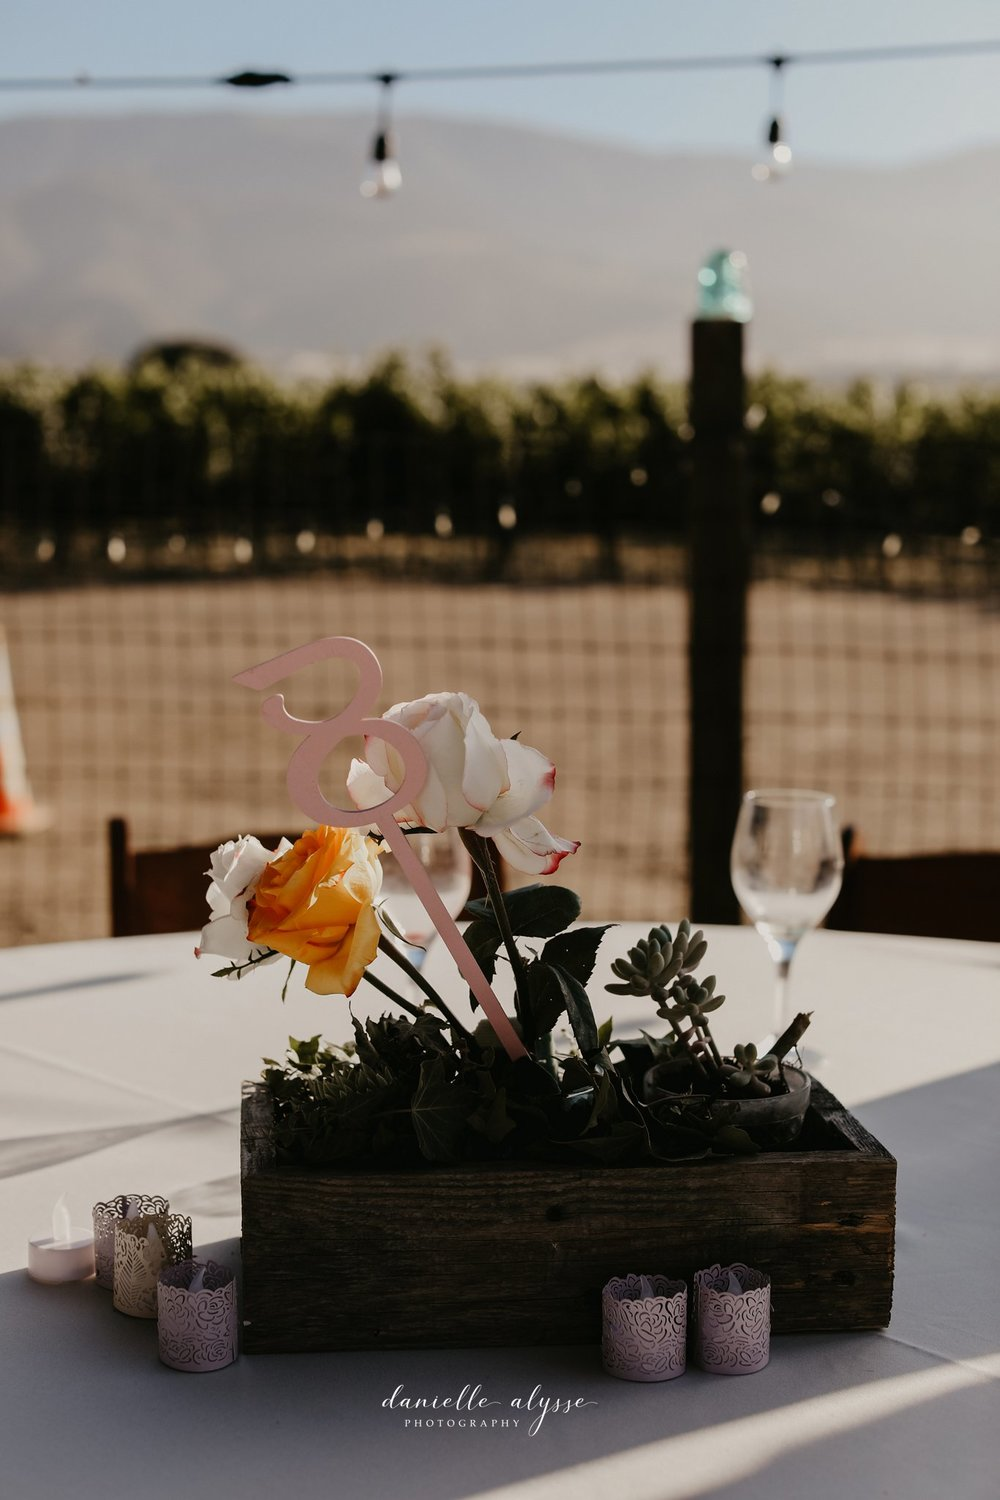 180630_wedding_lily_ryan_mission_soledad_california_danielle_alysse_photography_blog_841_WEB.jpg